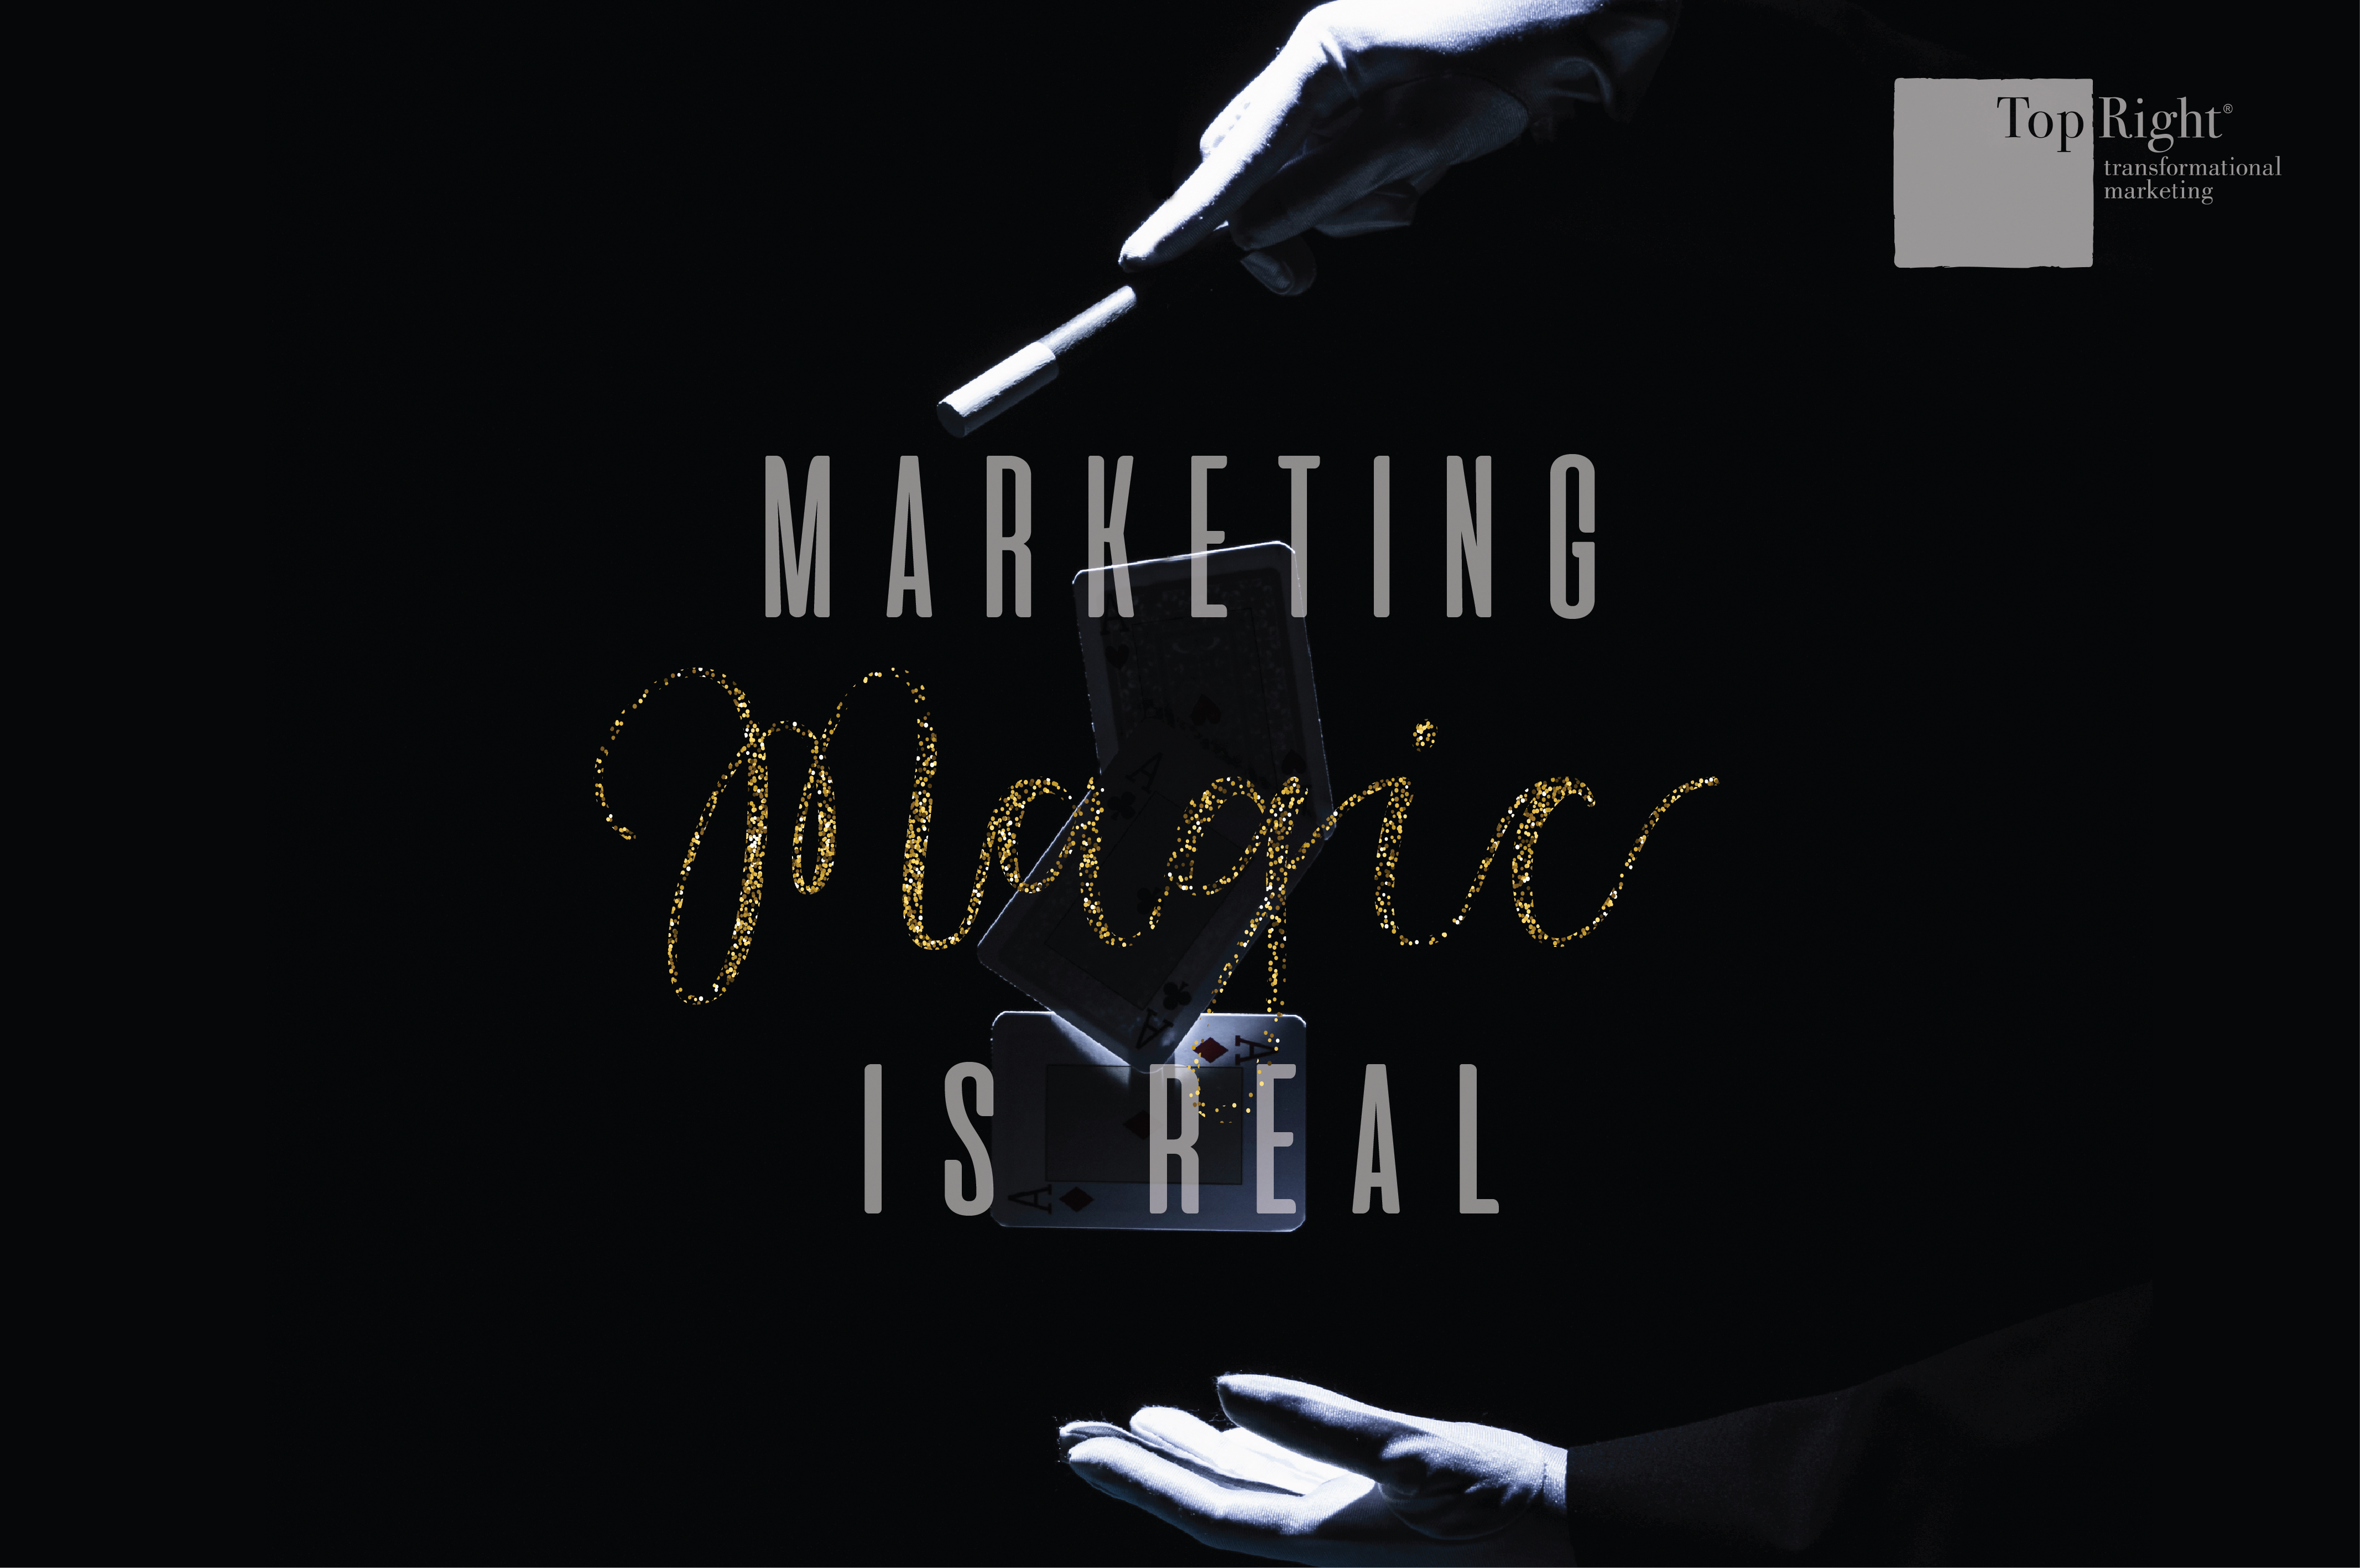 marketing magic is real in the form of shareable story